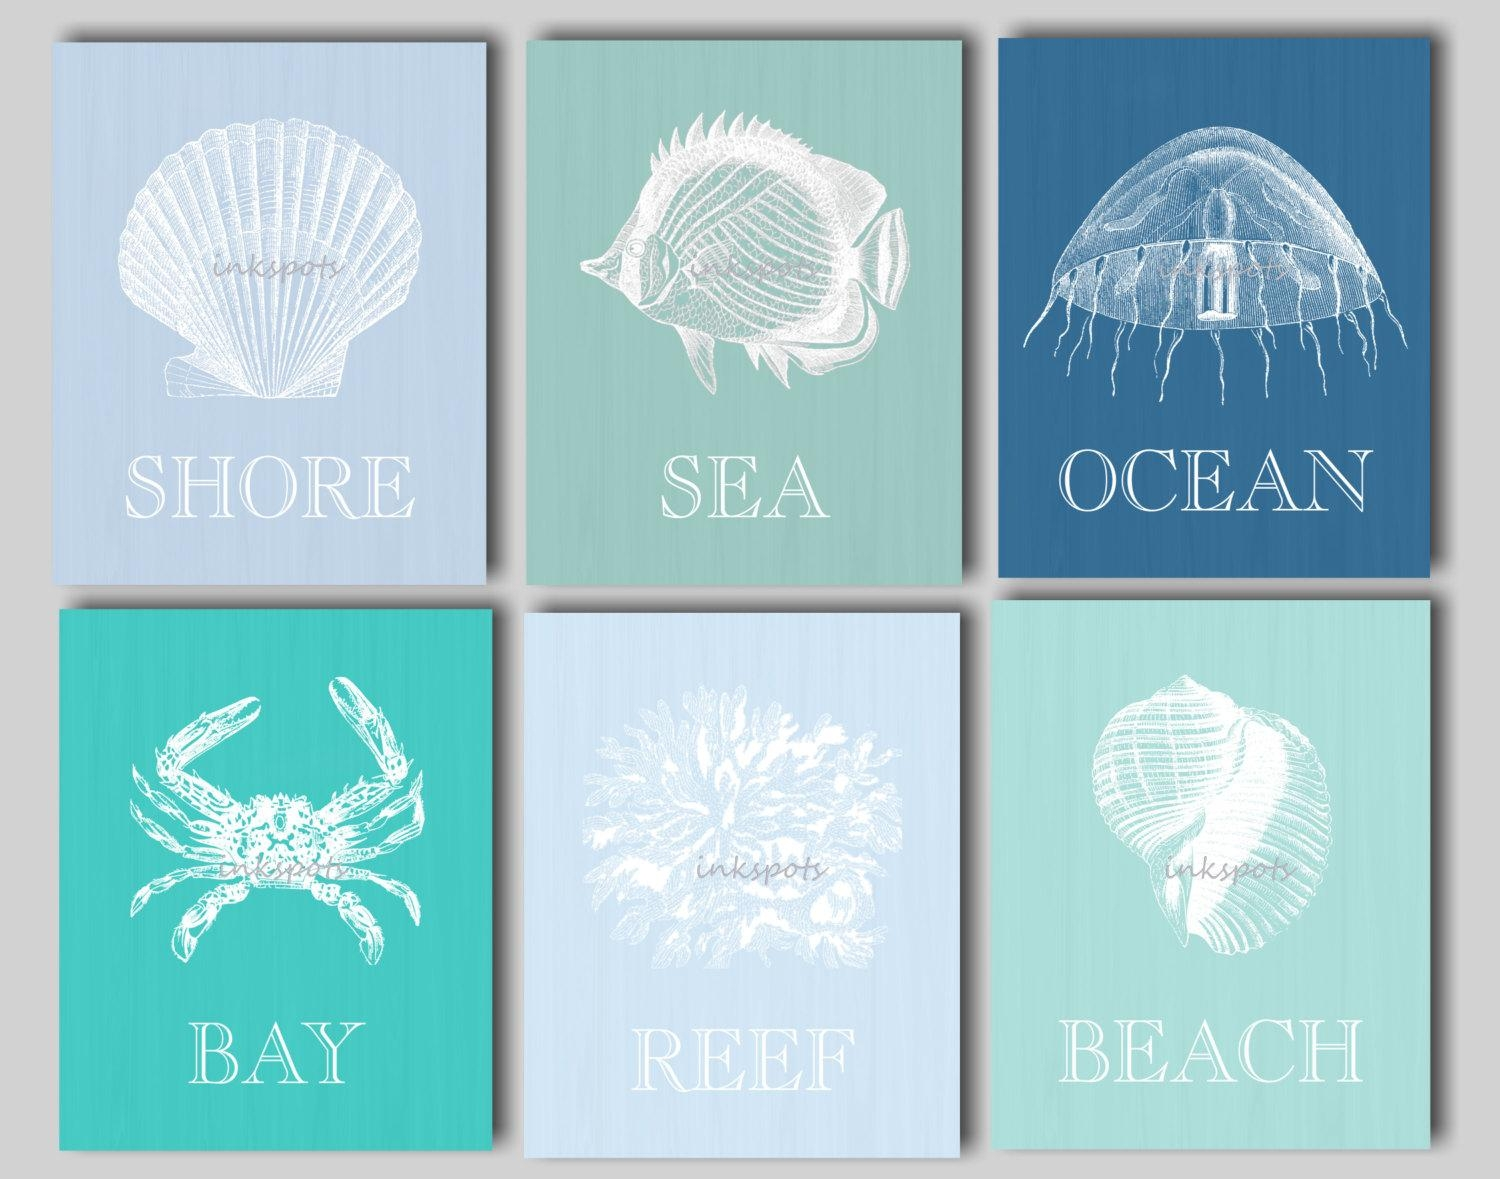 Wall Ideas: Beachy Wall Art Images. Wall Decor. Trendy Wall (View 17 of 20)